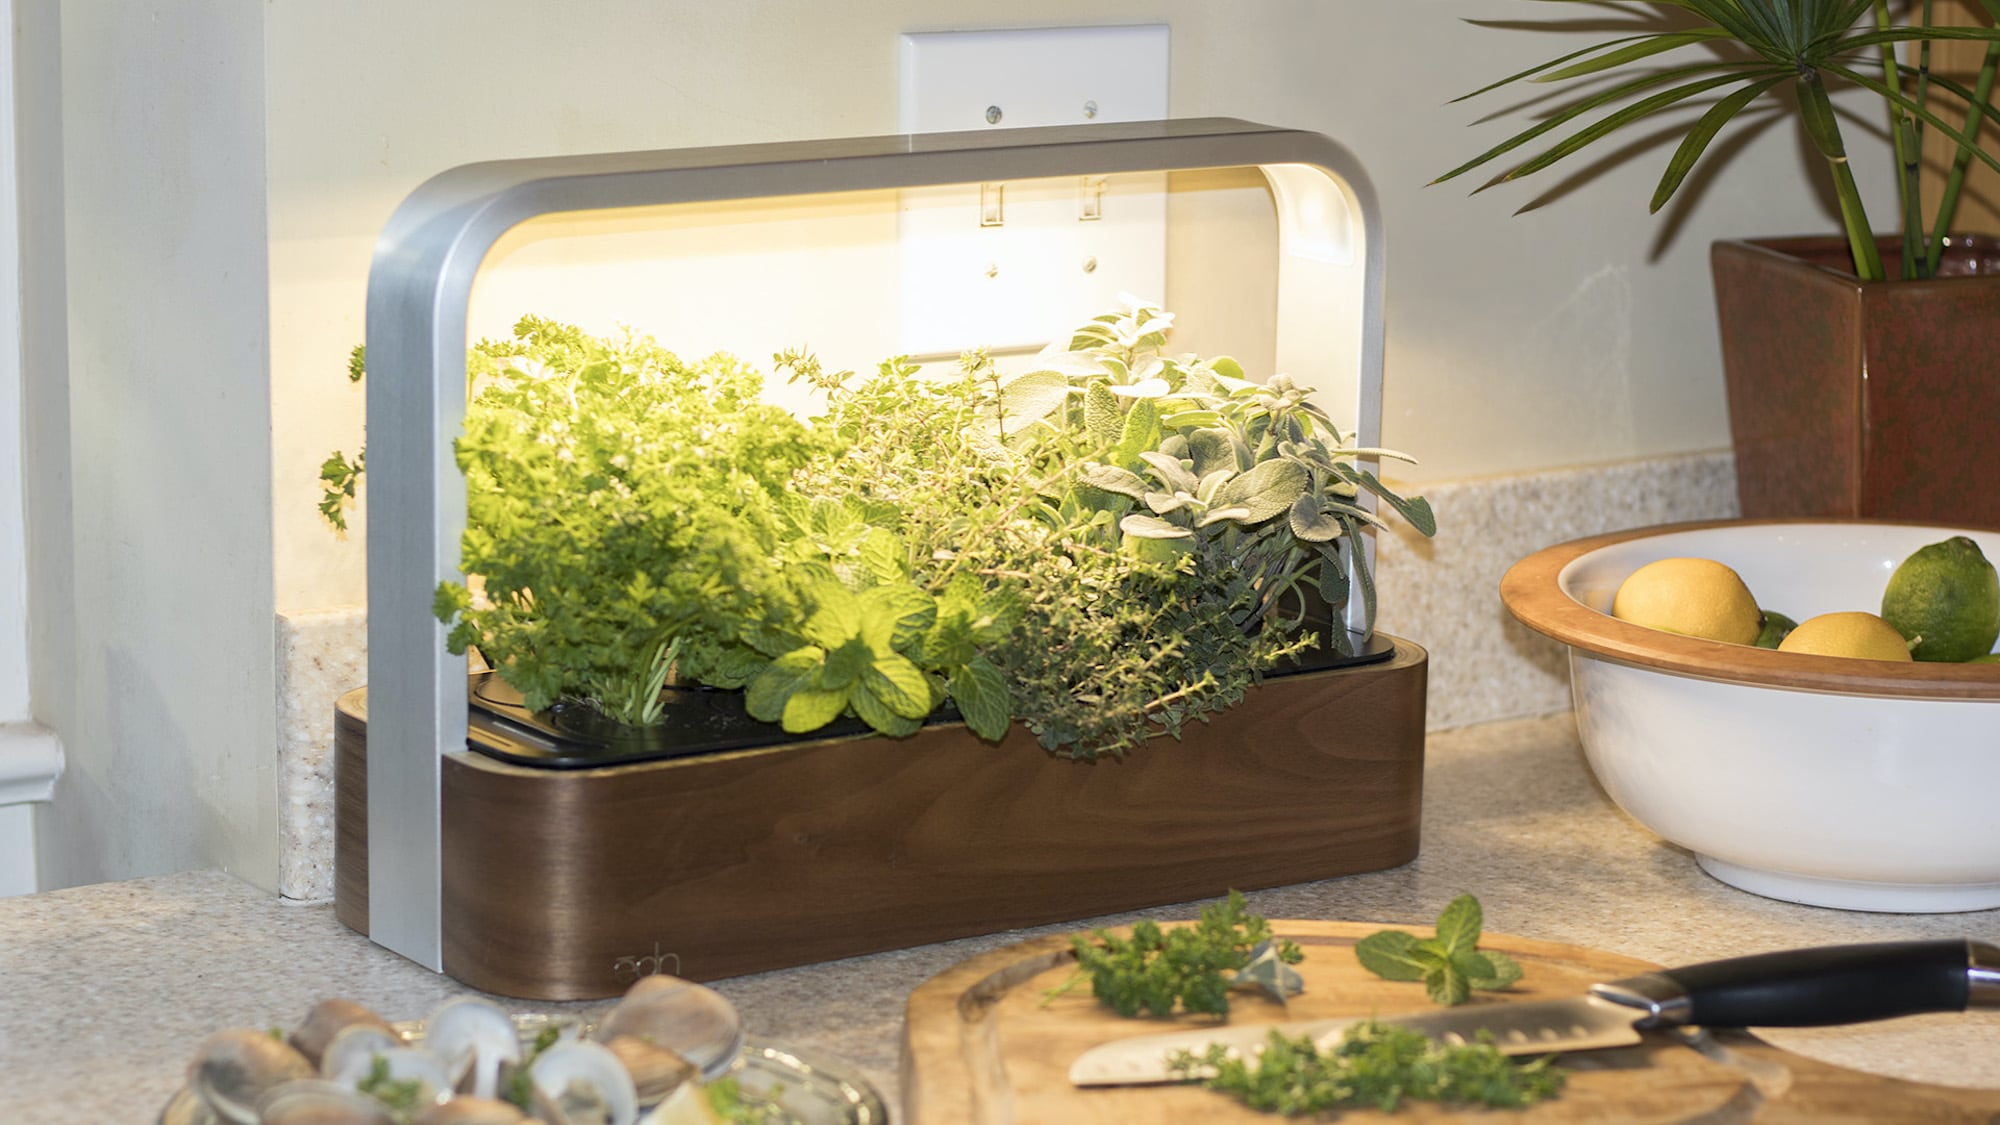 ēdn SmallGarden Indoor Connected Garden works over Wi-Fi so you can manage it from anywhere